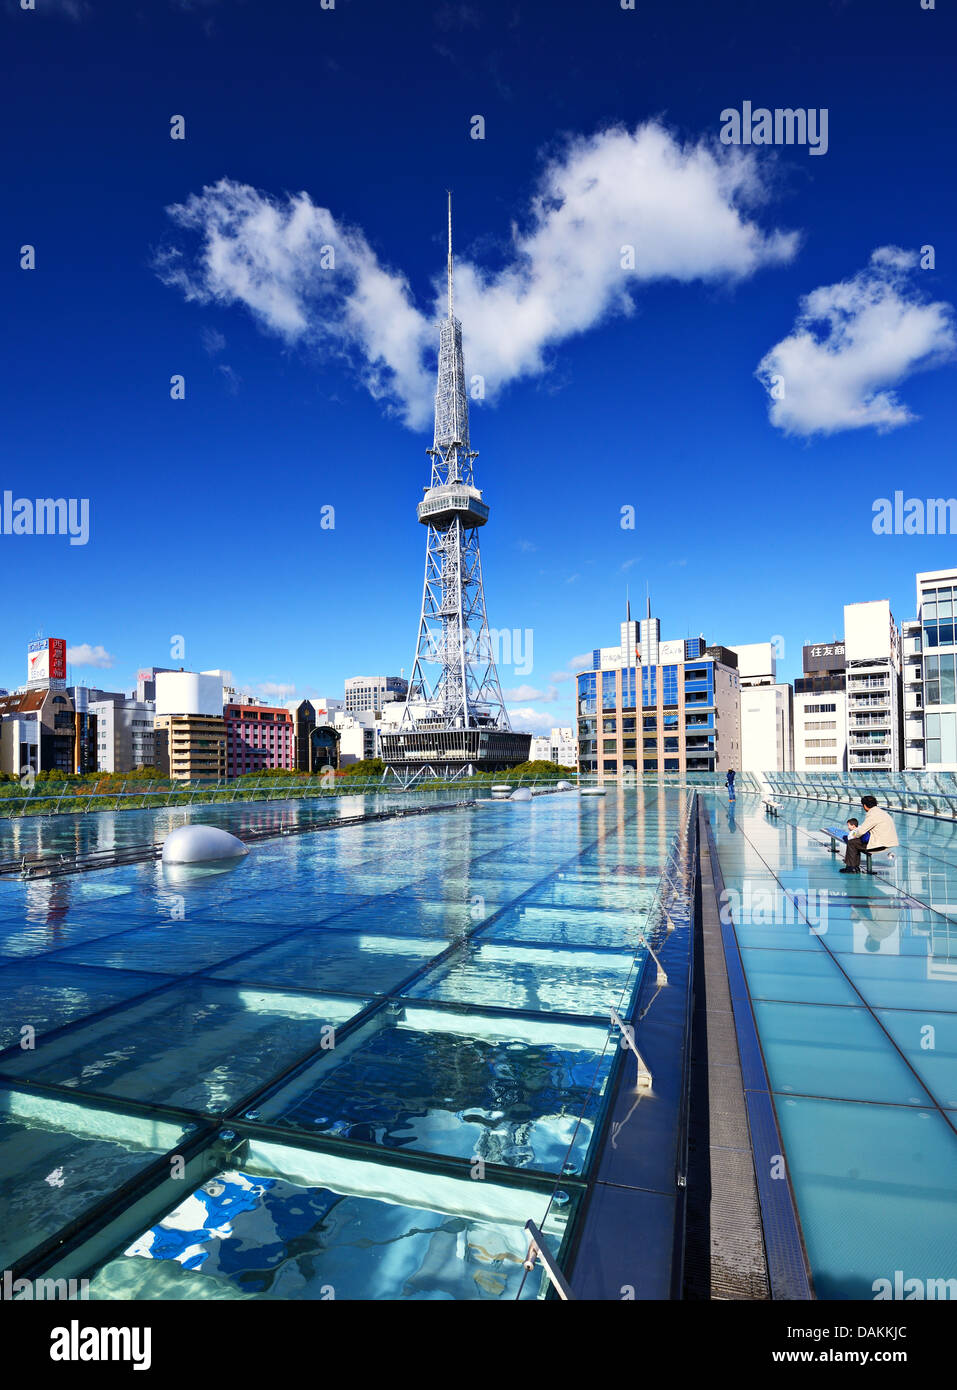 Oasis 21 and the TV Tower in Nagoya, Japan. - Stock Image